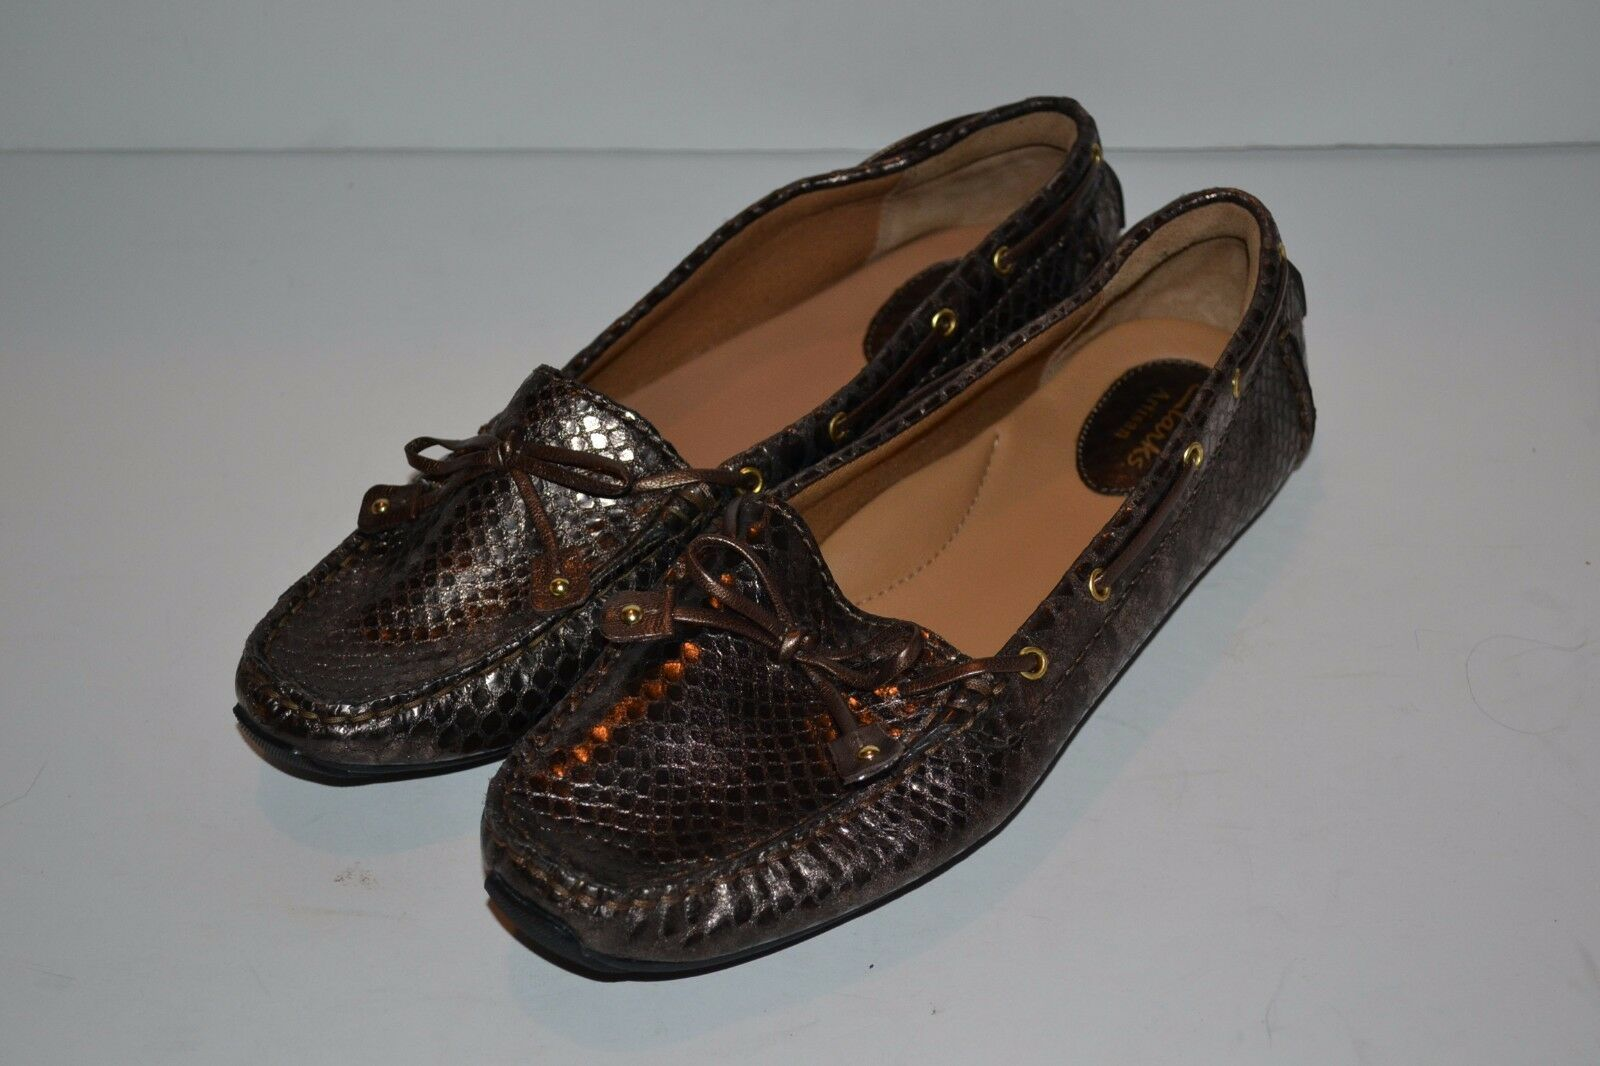 Clarks Dunbar Cruiser Womens Size 8.5 Bronze LEATHER LEATHER LEATHER Loafers FLATS shoes  145 40030a